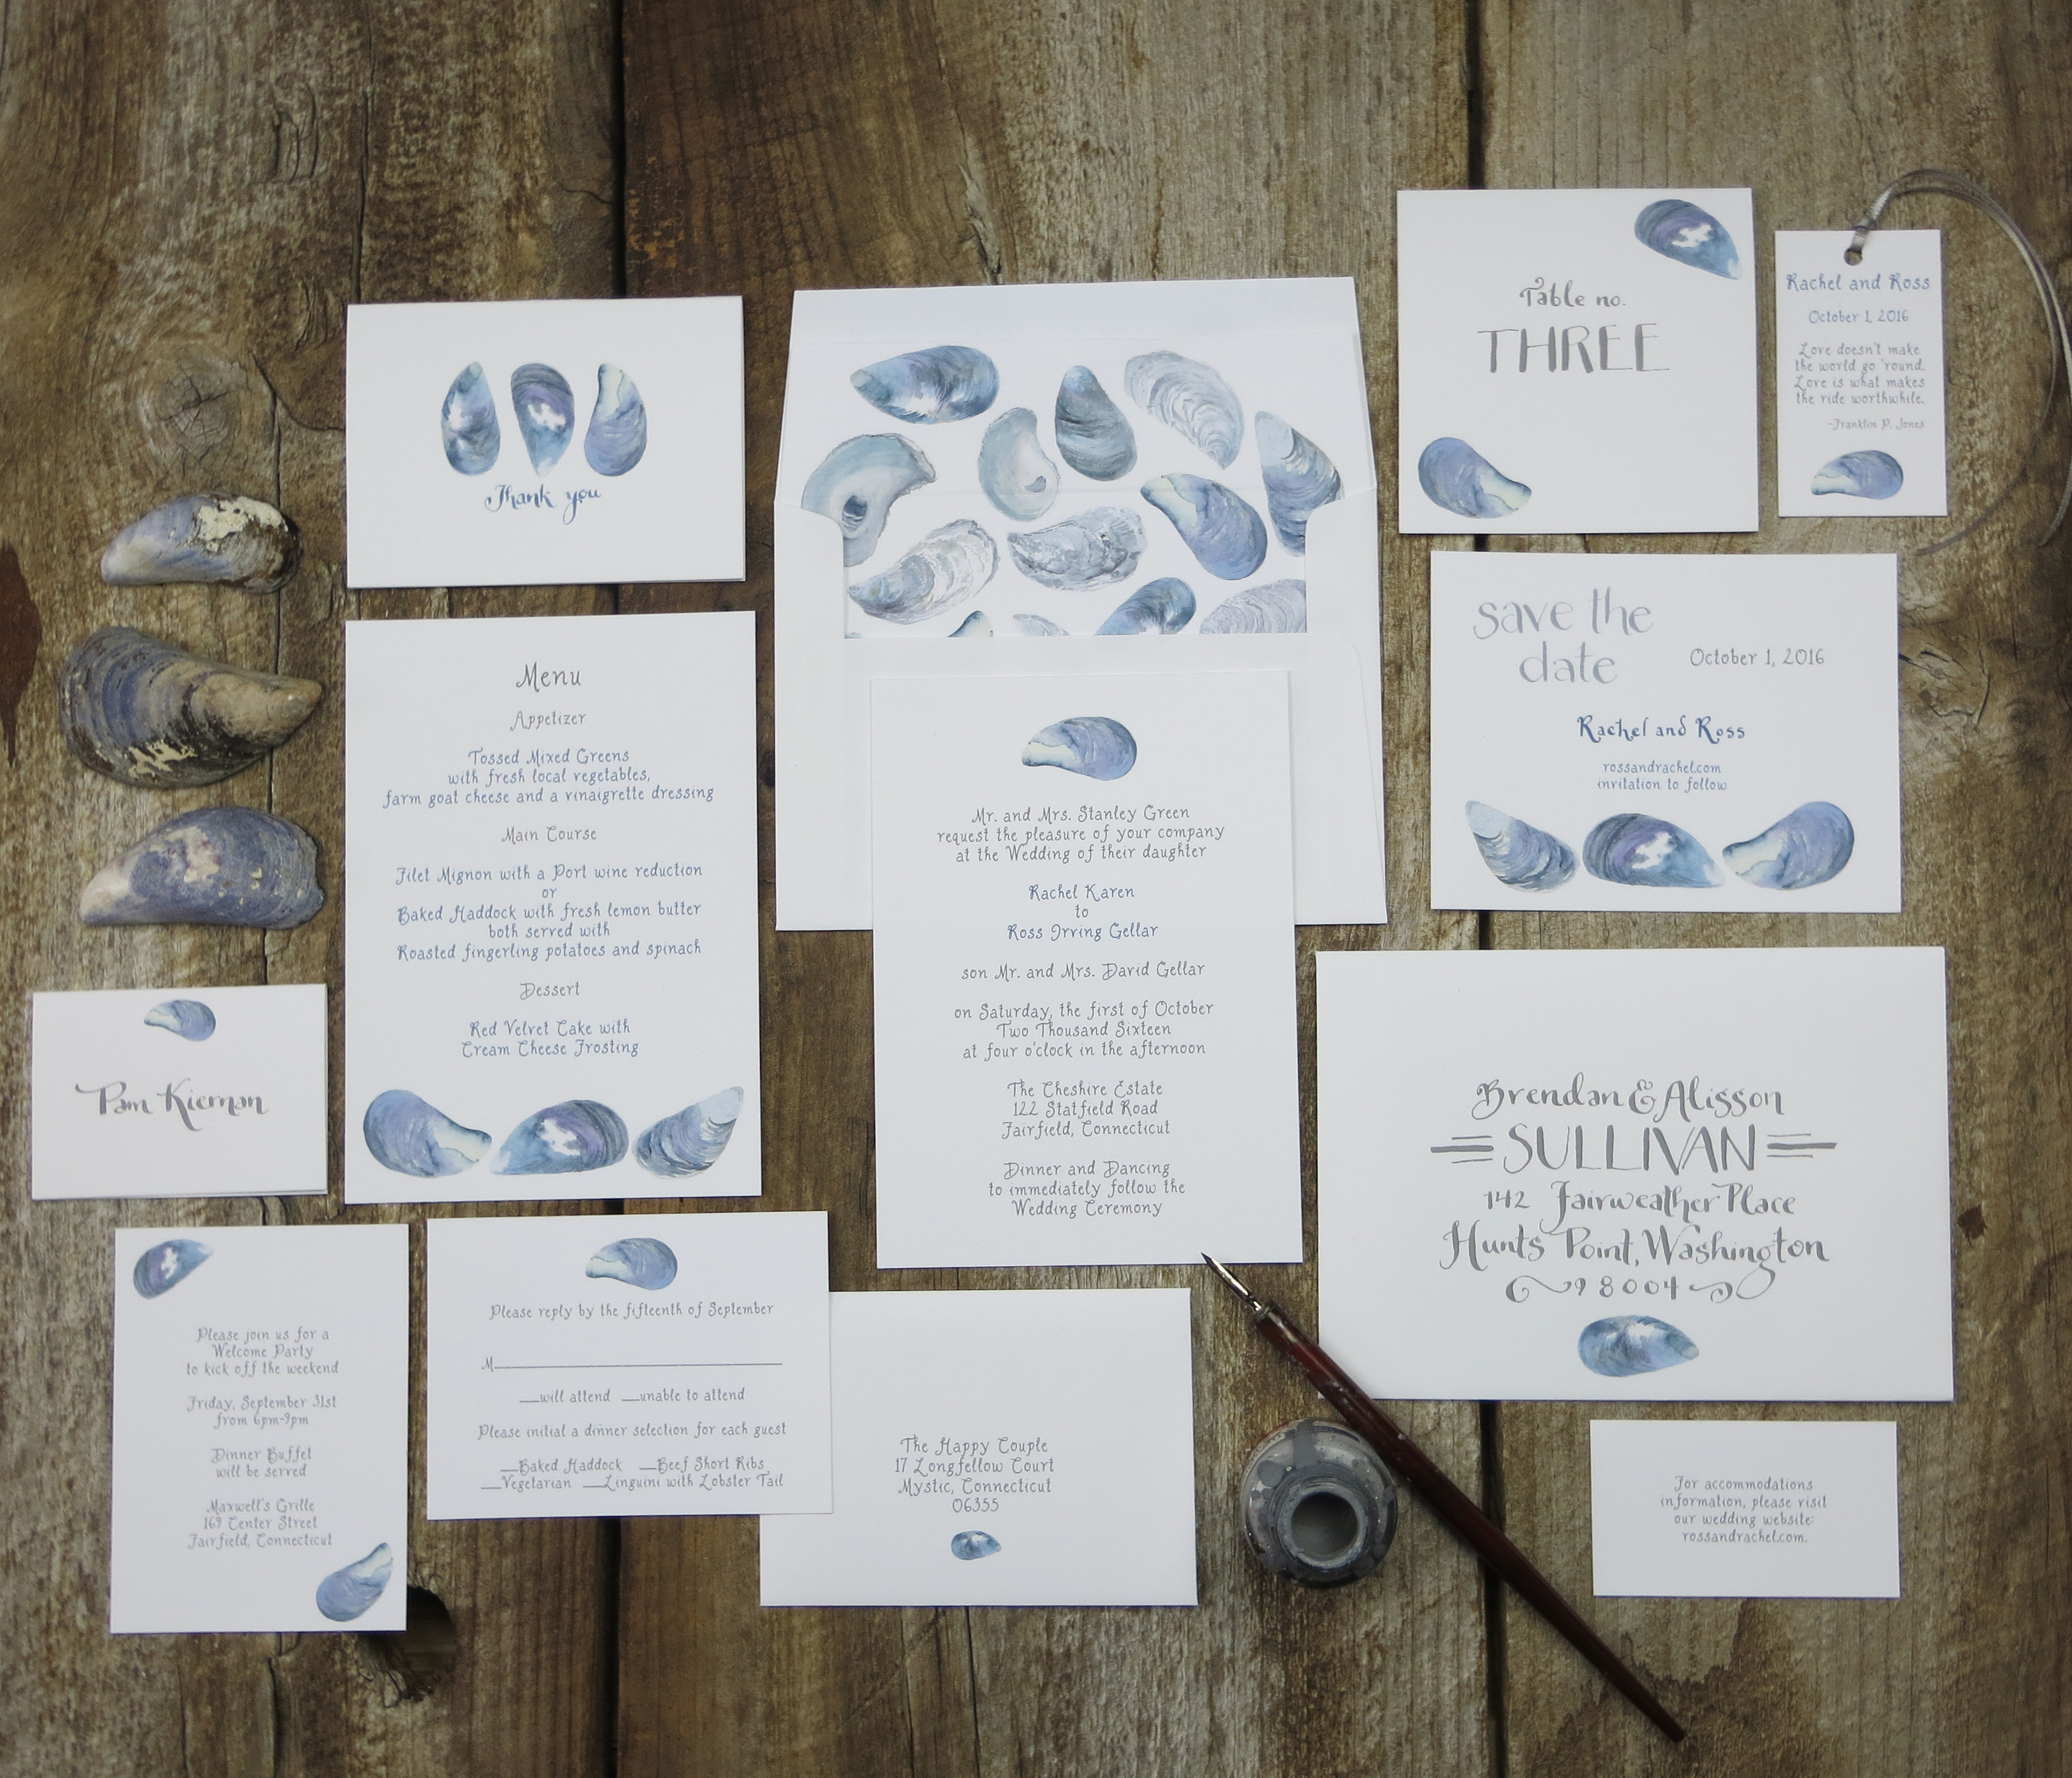 Maine wedding, Wedding planning, Wedding invitations, watercolor invitations, sweetest thing weddings, getting hitched, getting married in Maine